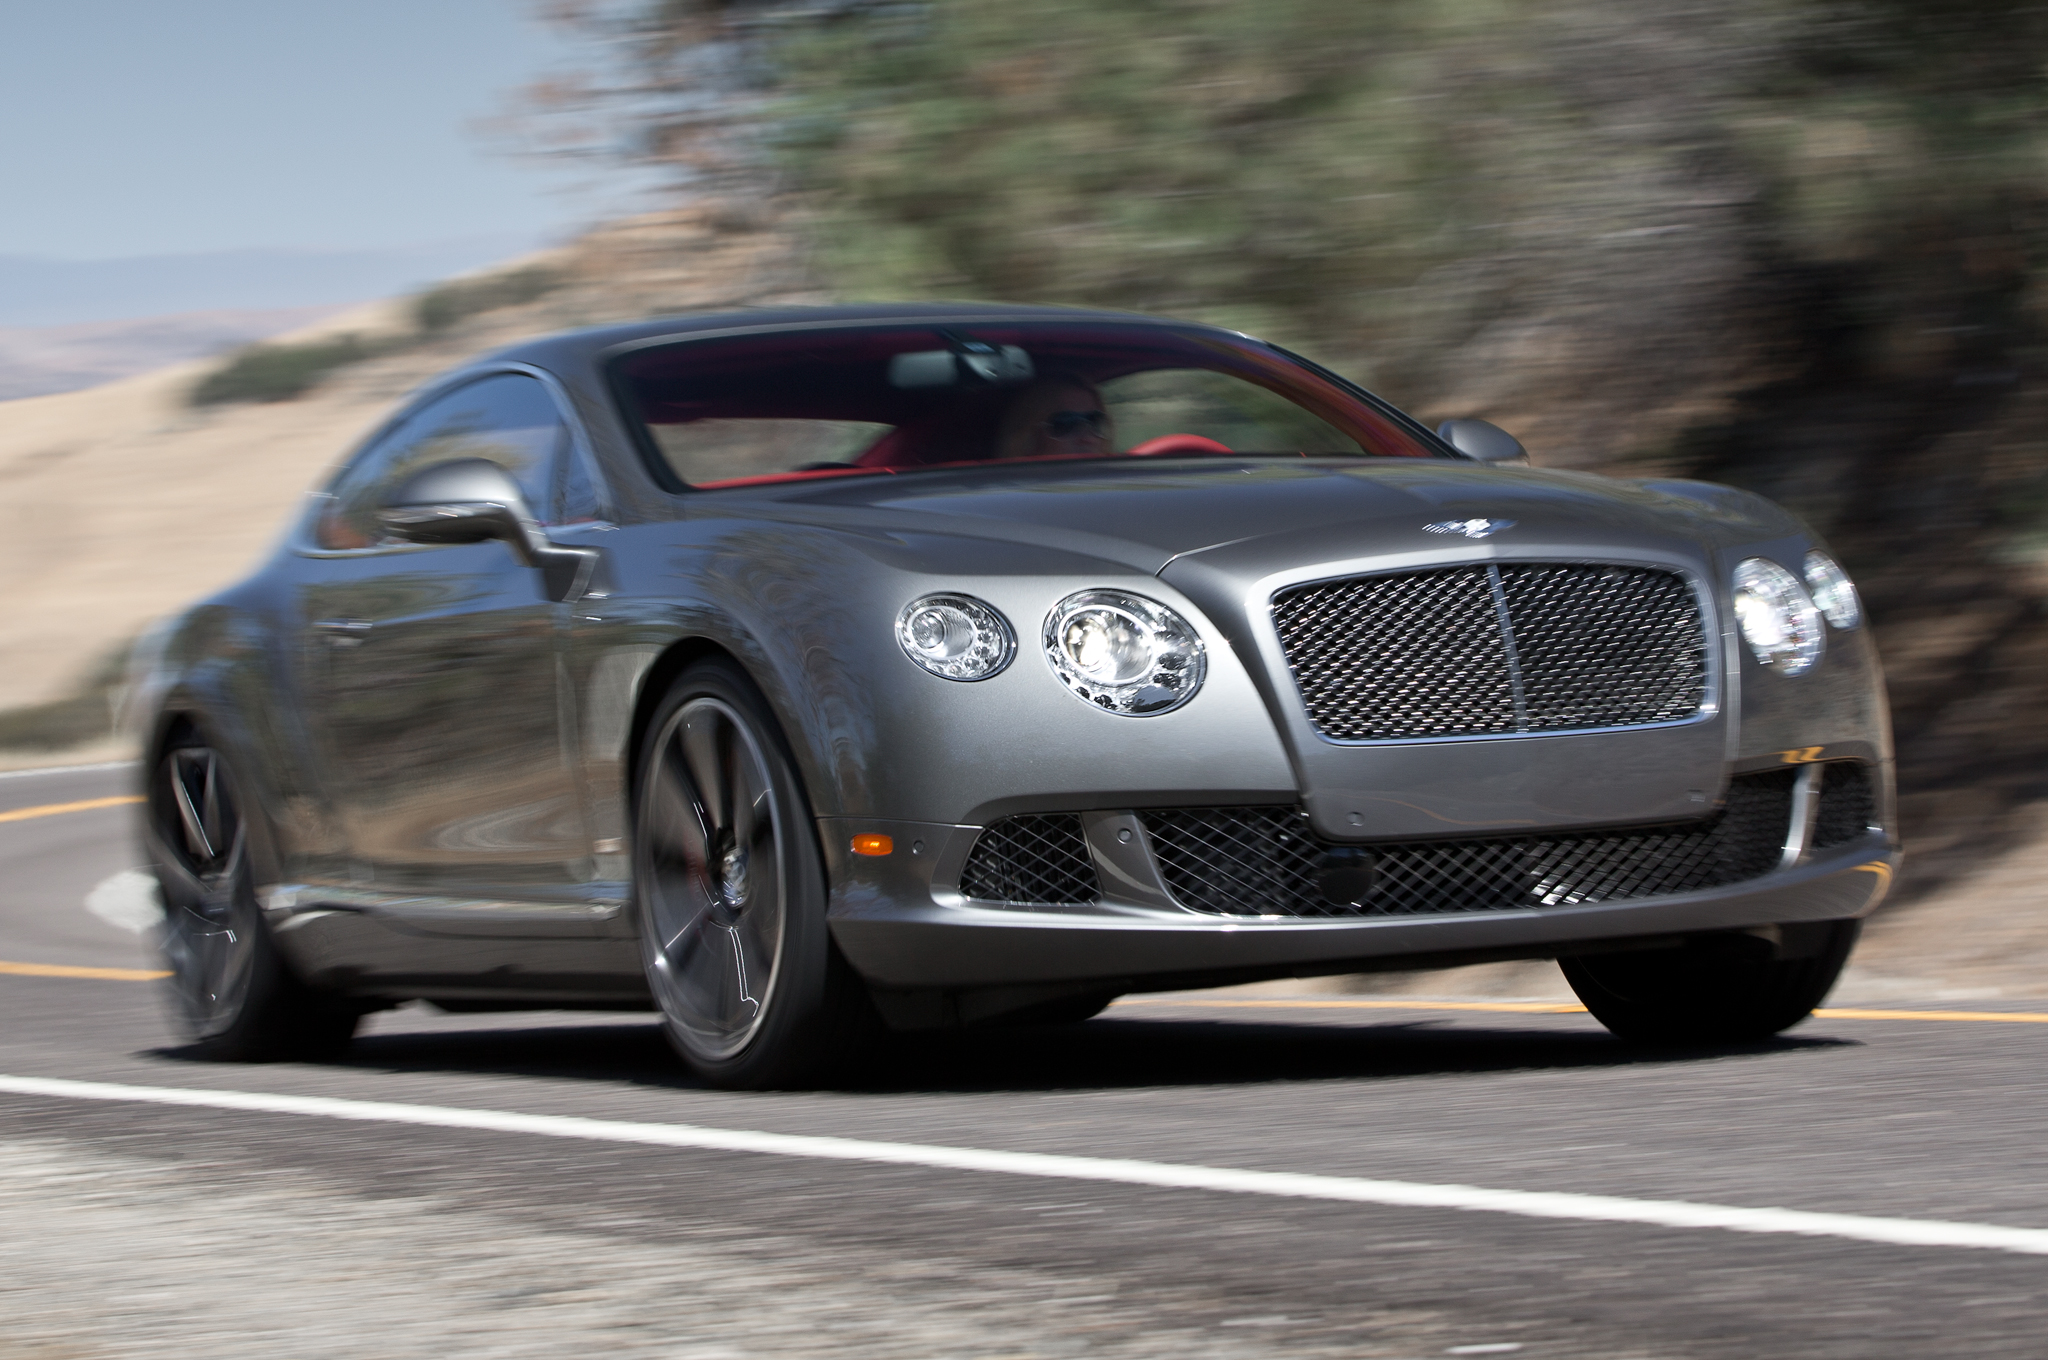 2013 Bentley Continental Gtc #4